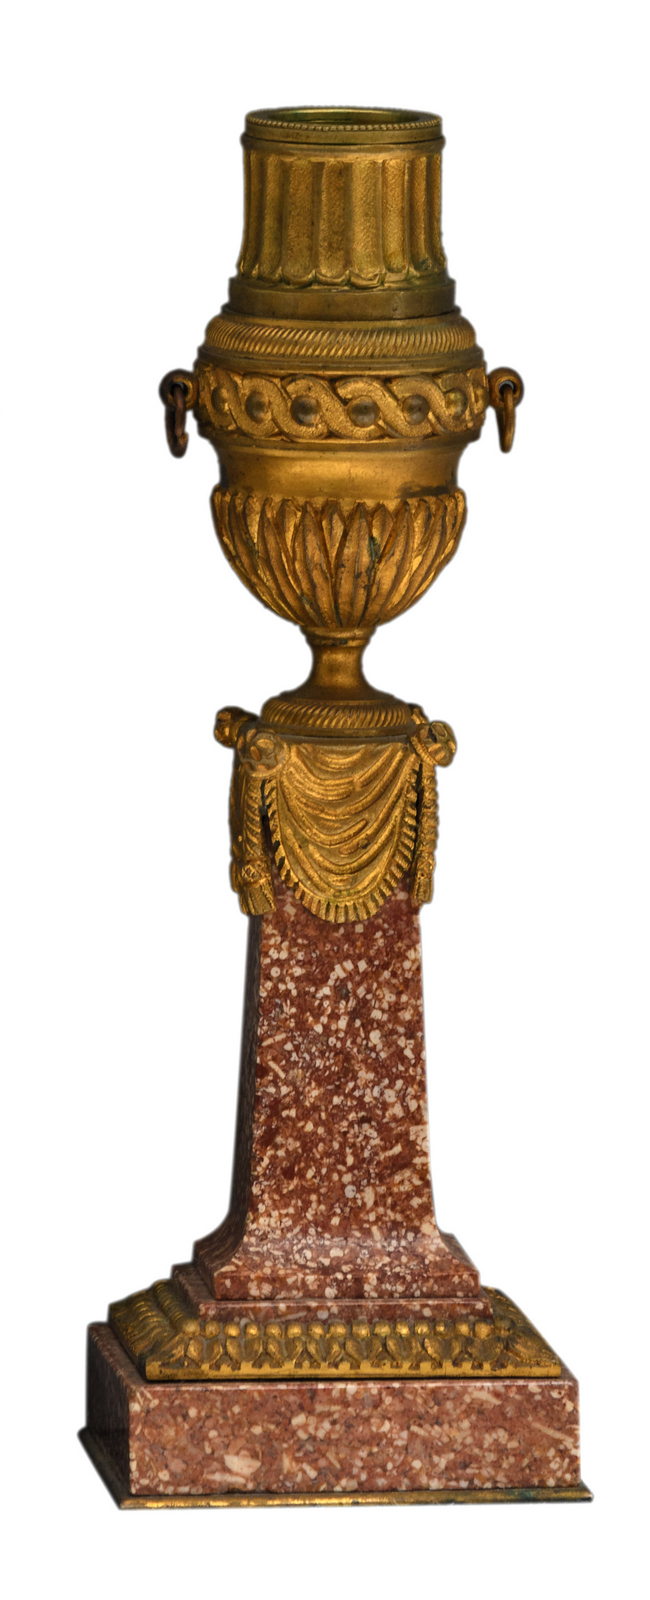 A Neoclassical decorative gilt bronze mounted (porphyry) trophy/candlestick, H 21 cm